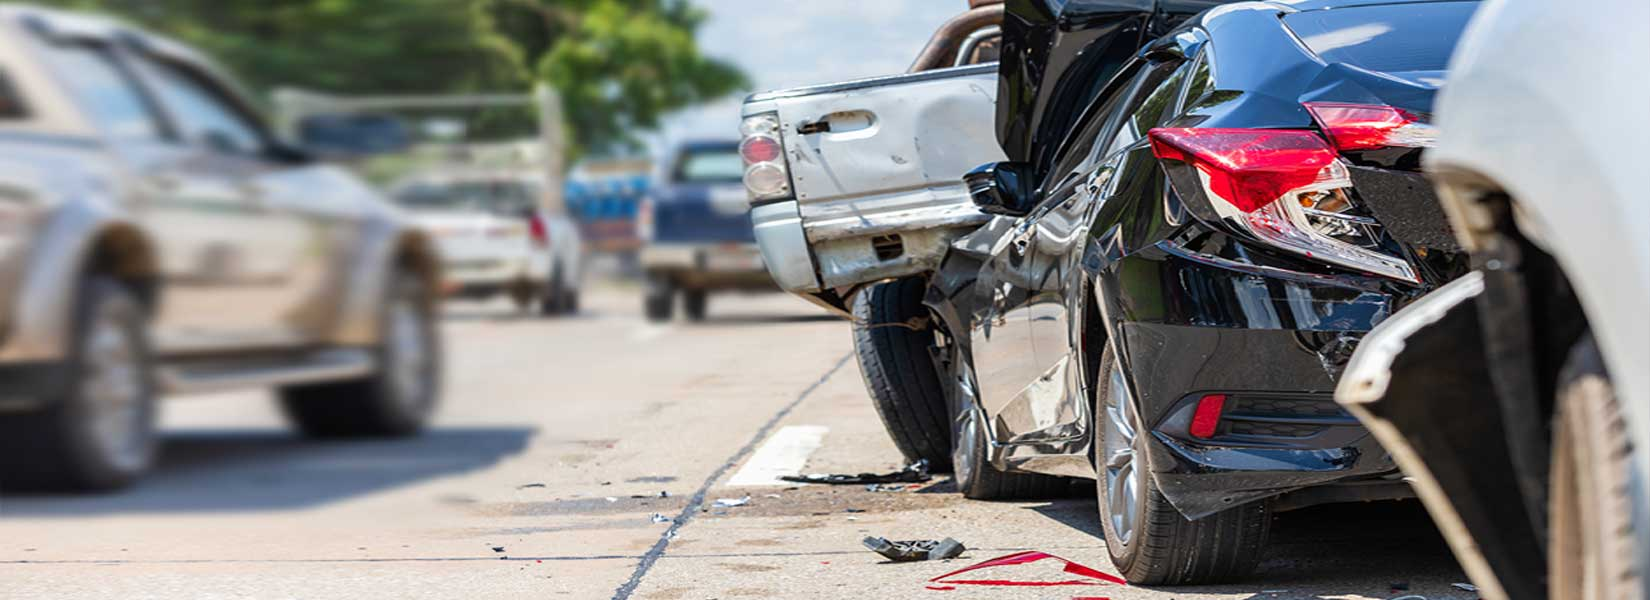 Las Vegas Rear End Accidents Are Common in Holiday Traffic